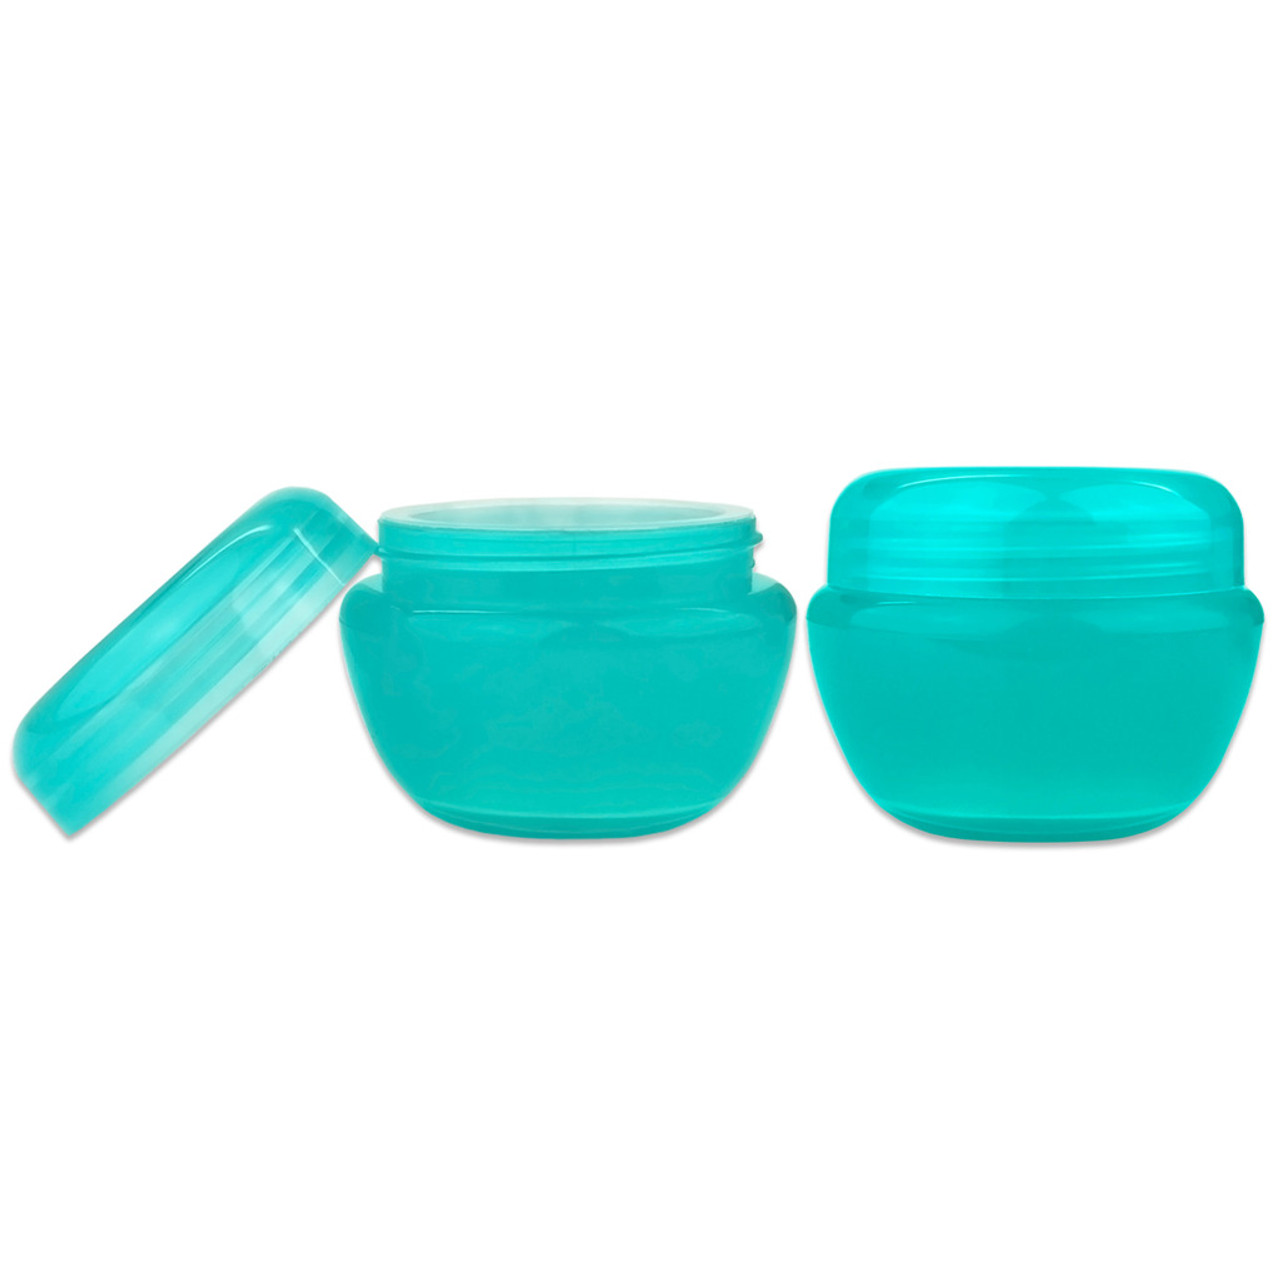 30g/30ml (1 oz) Plastic Cosmetic Sample Jars (Frosted)